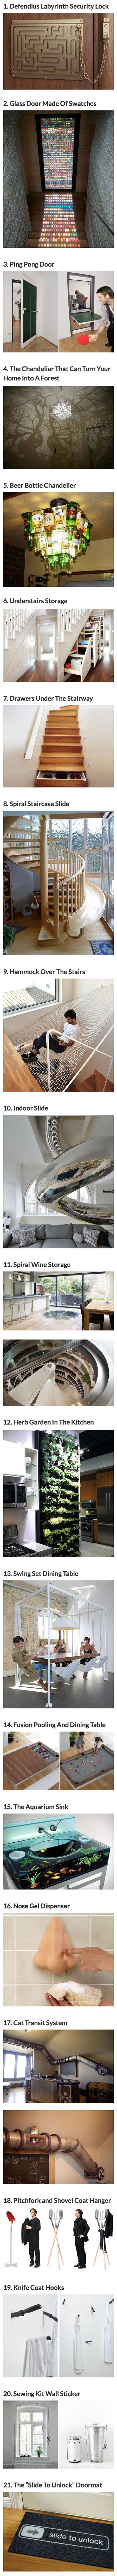 30 Cool and Geeky Home Ideas That Think Outside the Box - TechEBlog